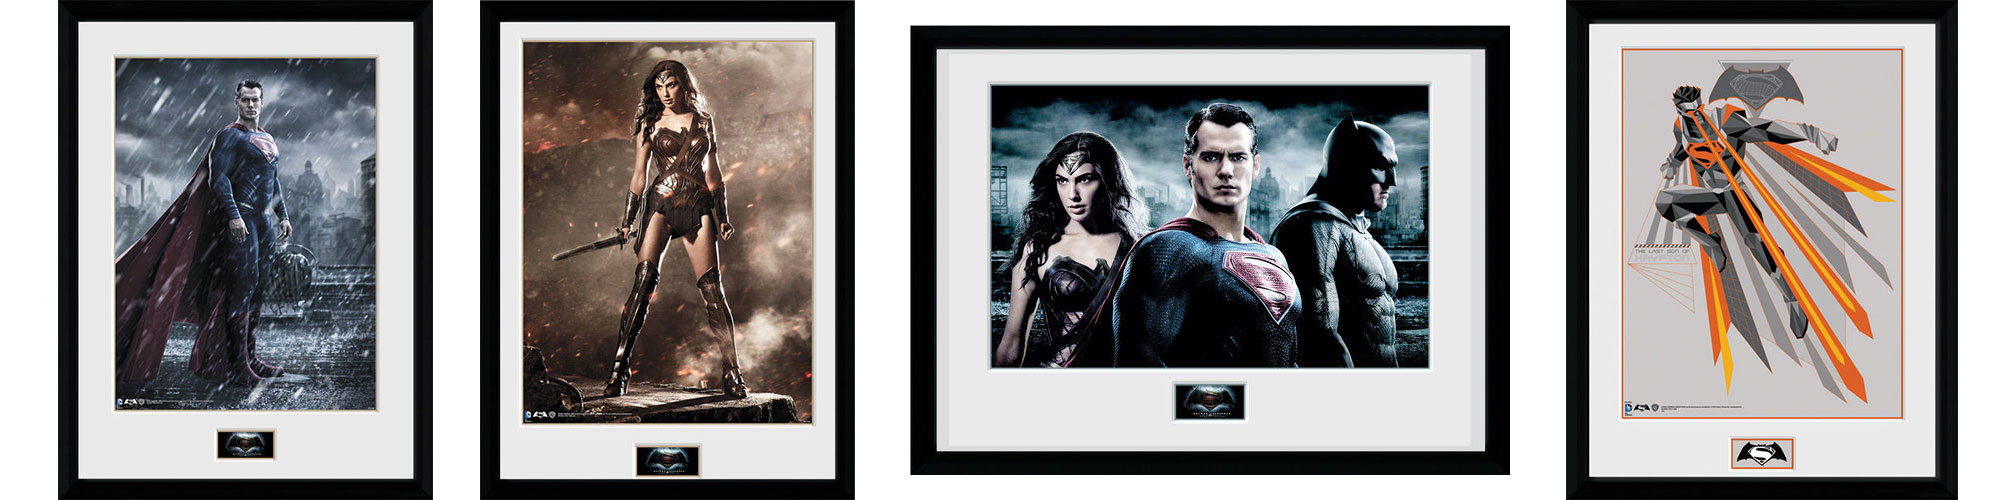 dawn-of-justice-framed-poster-toyslife